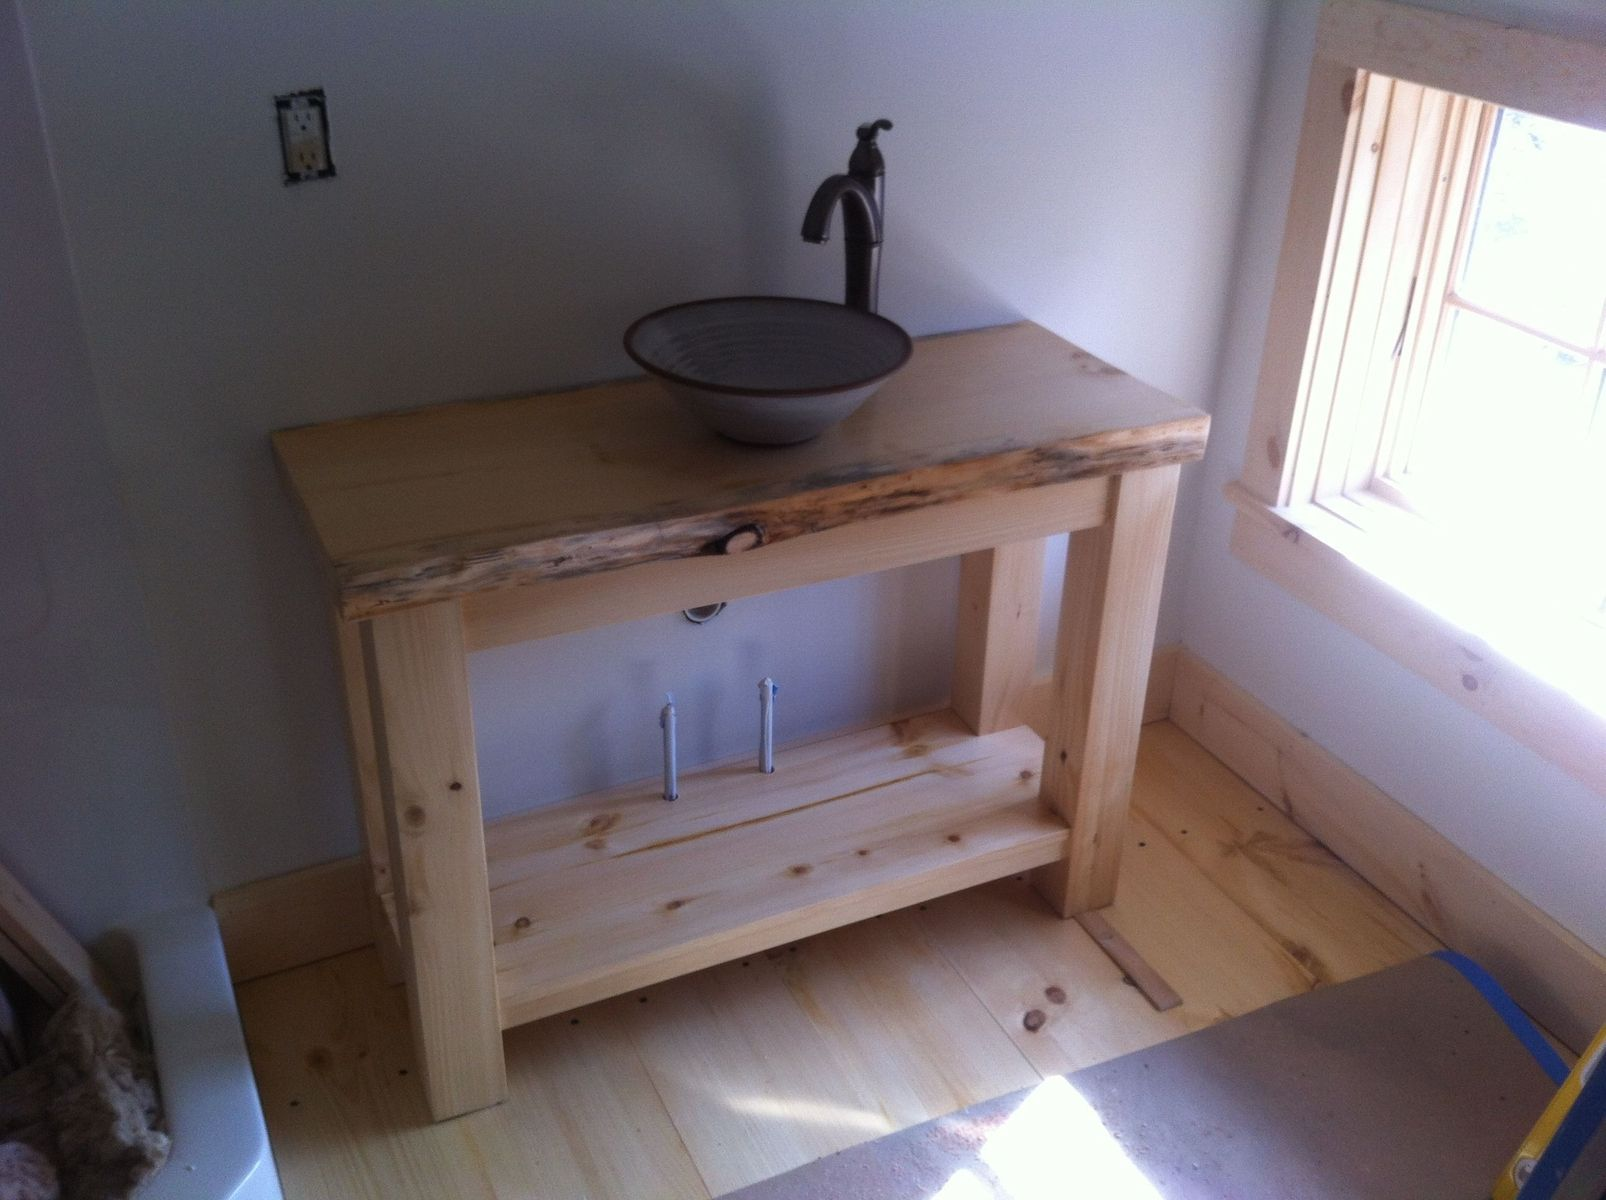 rustic pine bathroom vanity. Custom Made Rustic Pine Vanity With Vessel Sink Handmade by Wooden Hammer Llc